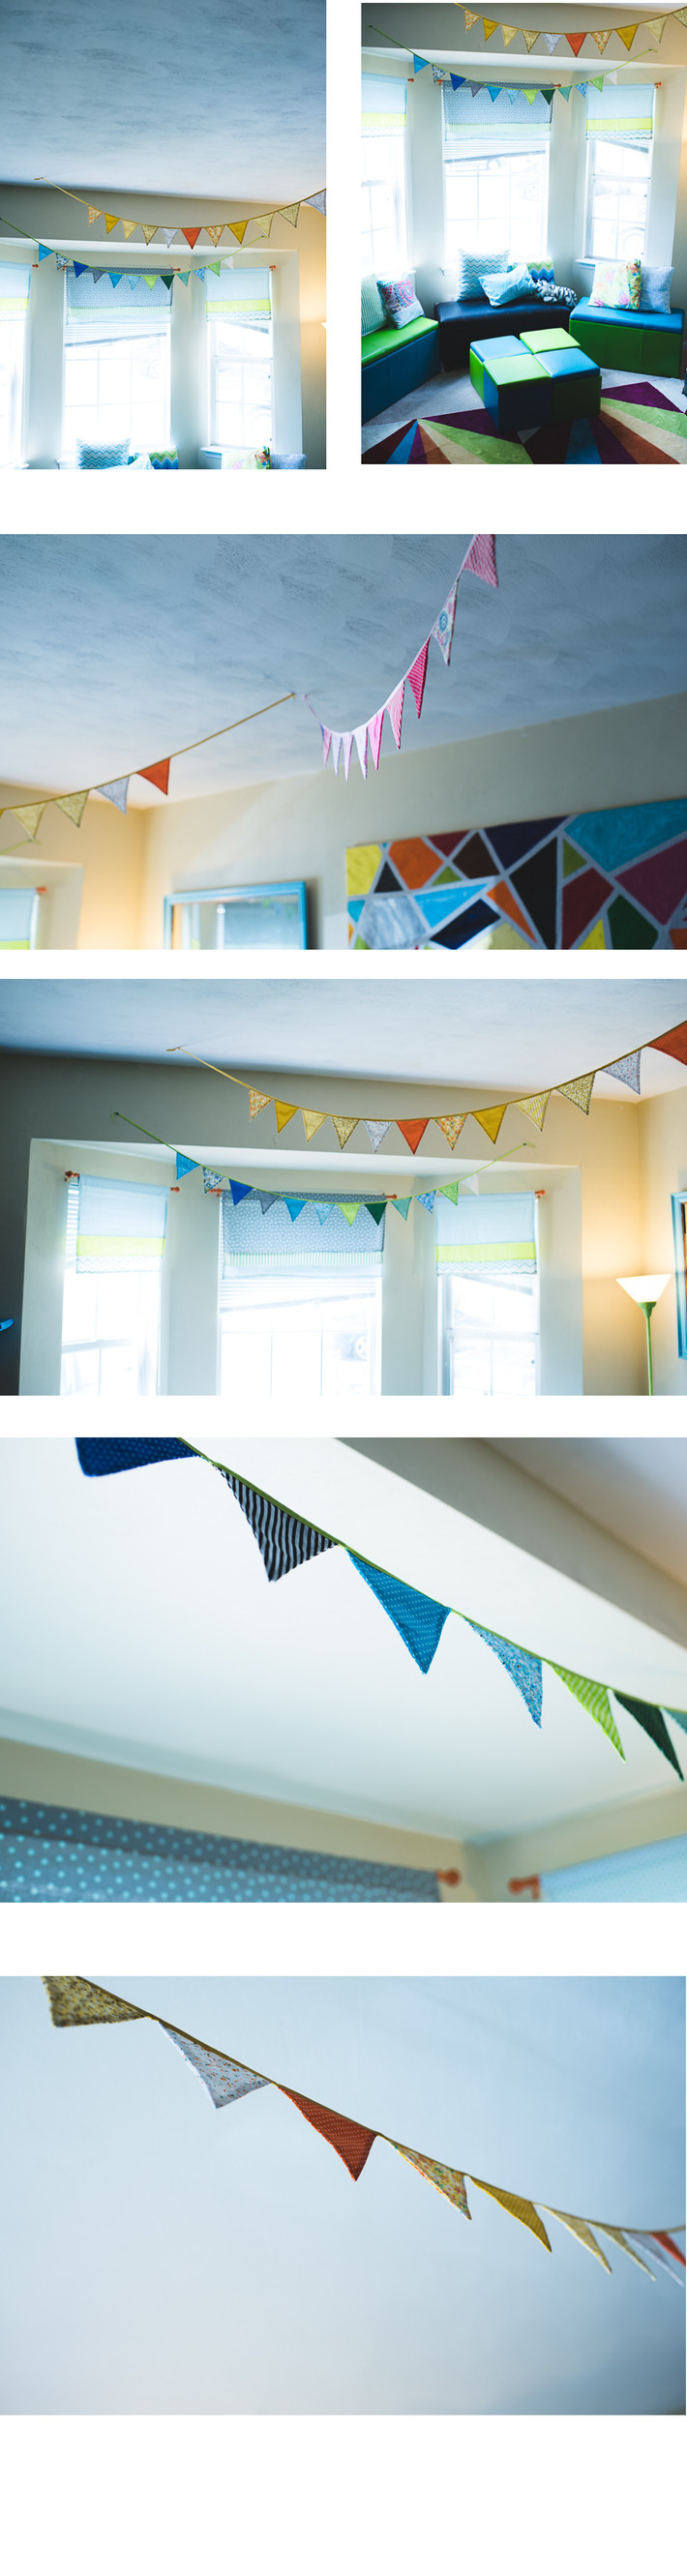 Cheap Decor Ideas.. Cheap fabric pennant banners for under 10 dollars on amazon? No way! Yes way!